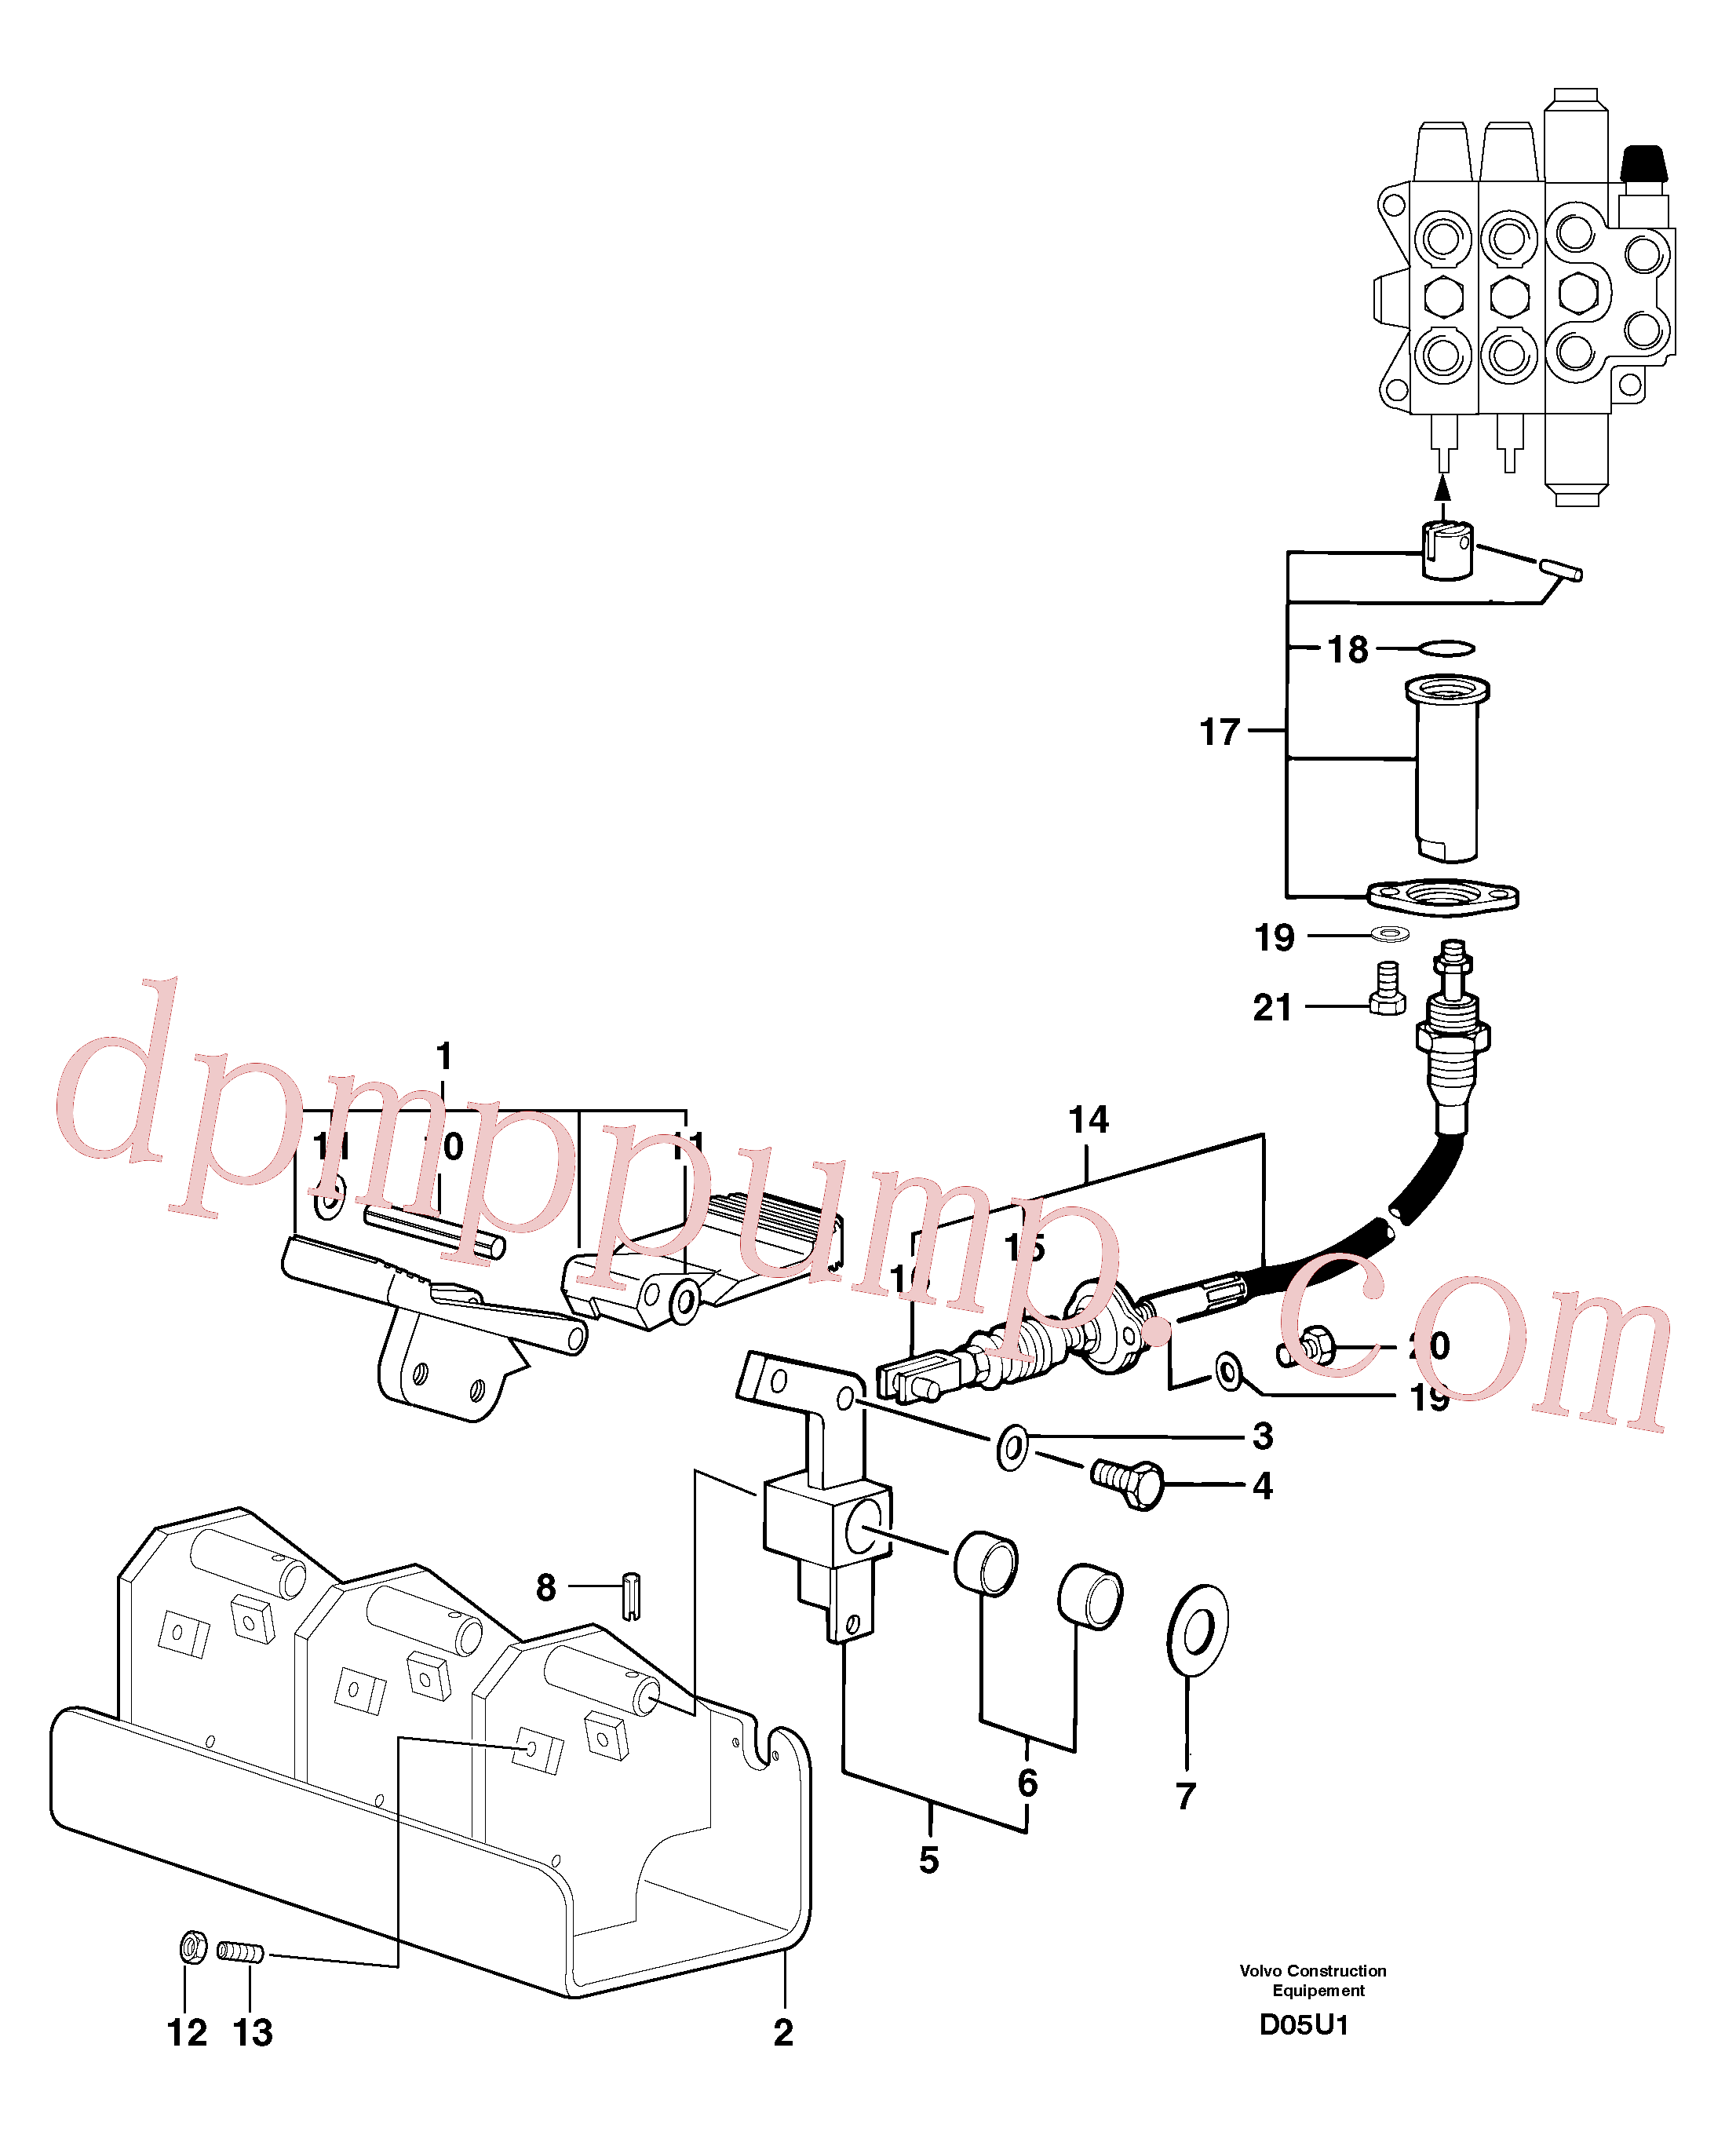 PJ5270536 for Volvo Control pedal : hand-operated accessories - 58 l/m(D05U1 assembly)